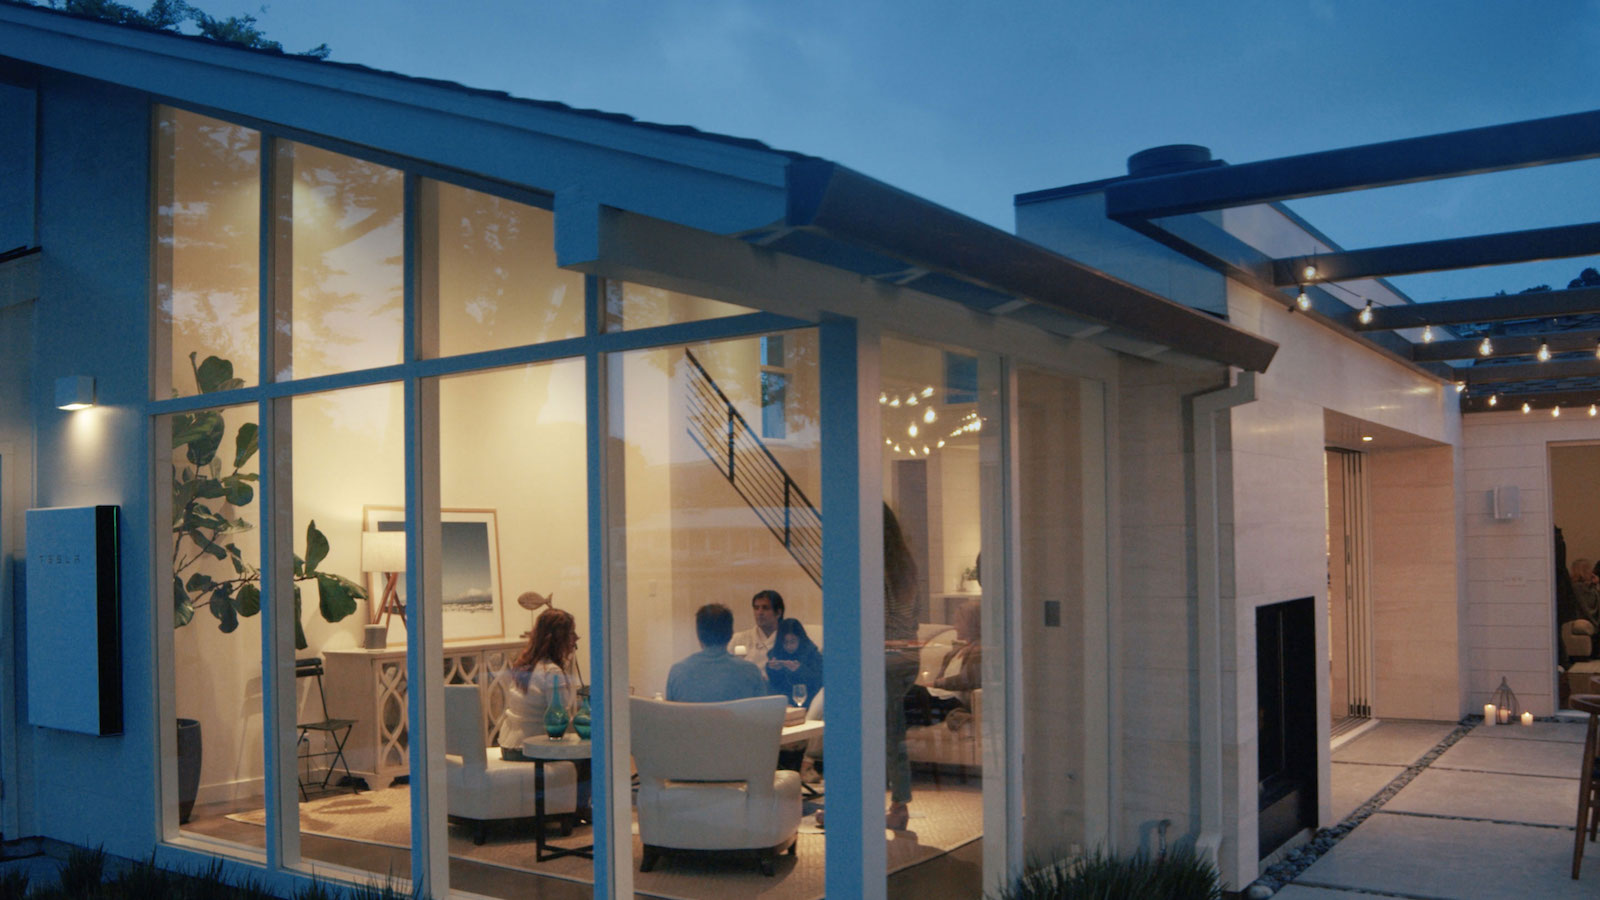 Tesla Solar Panels Rooftop Power Supply lets you take control of your energy bills